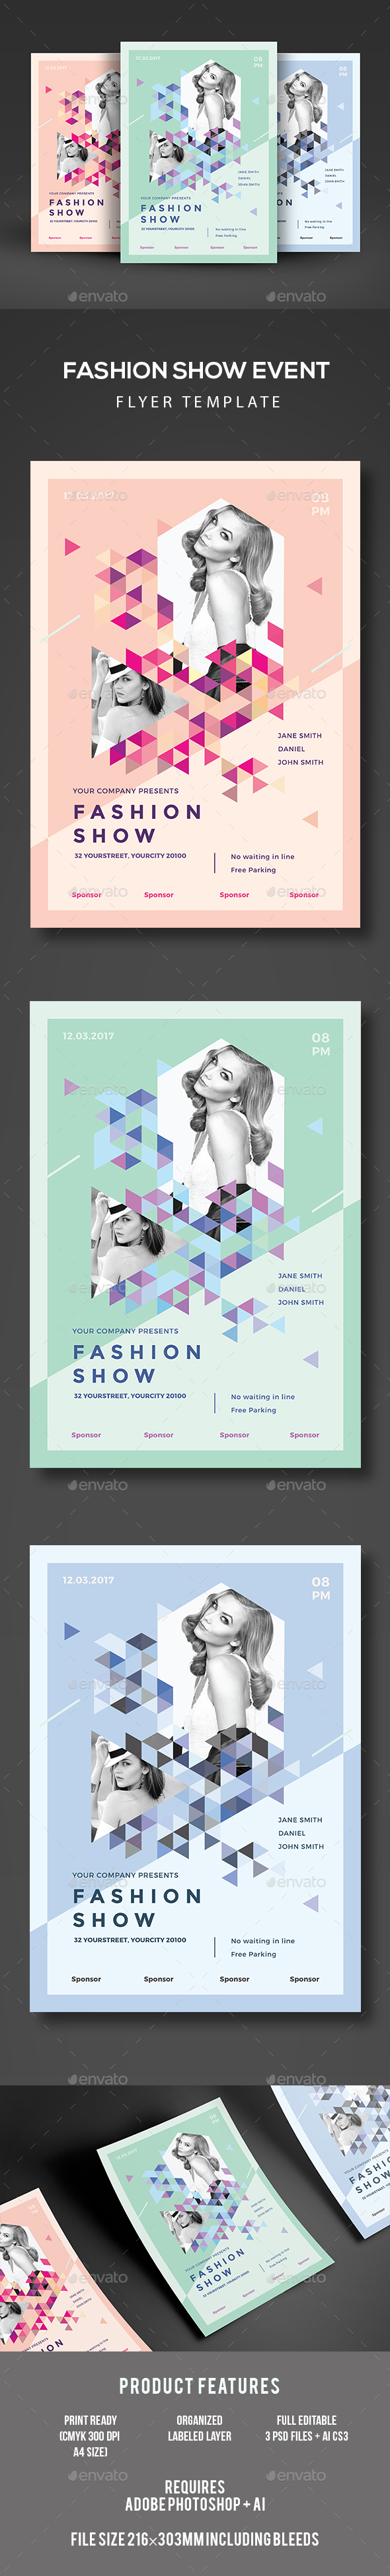 Fashion show flyer templates 6